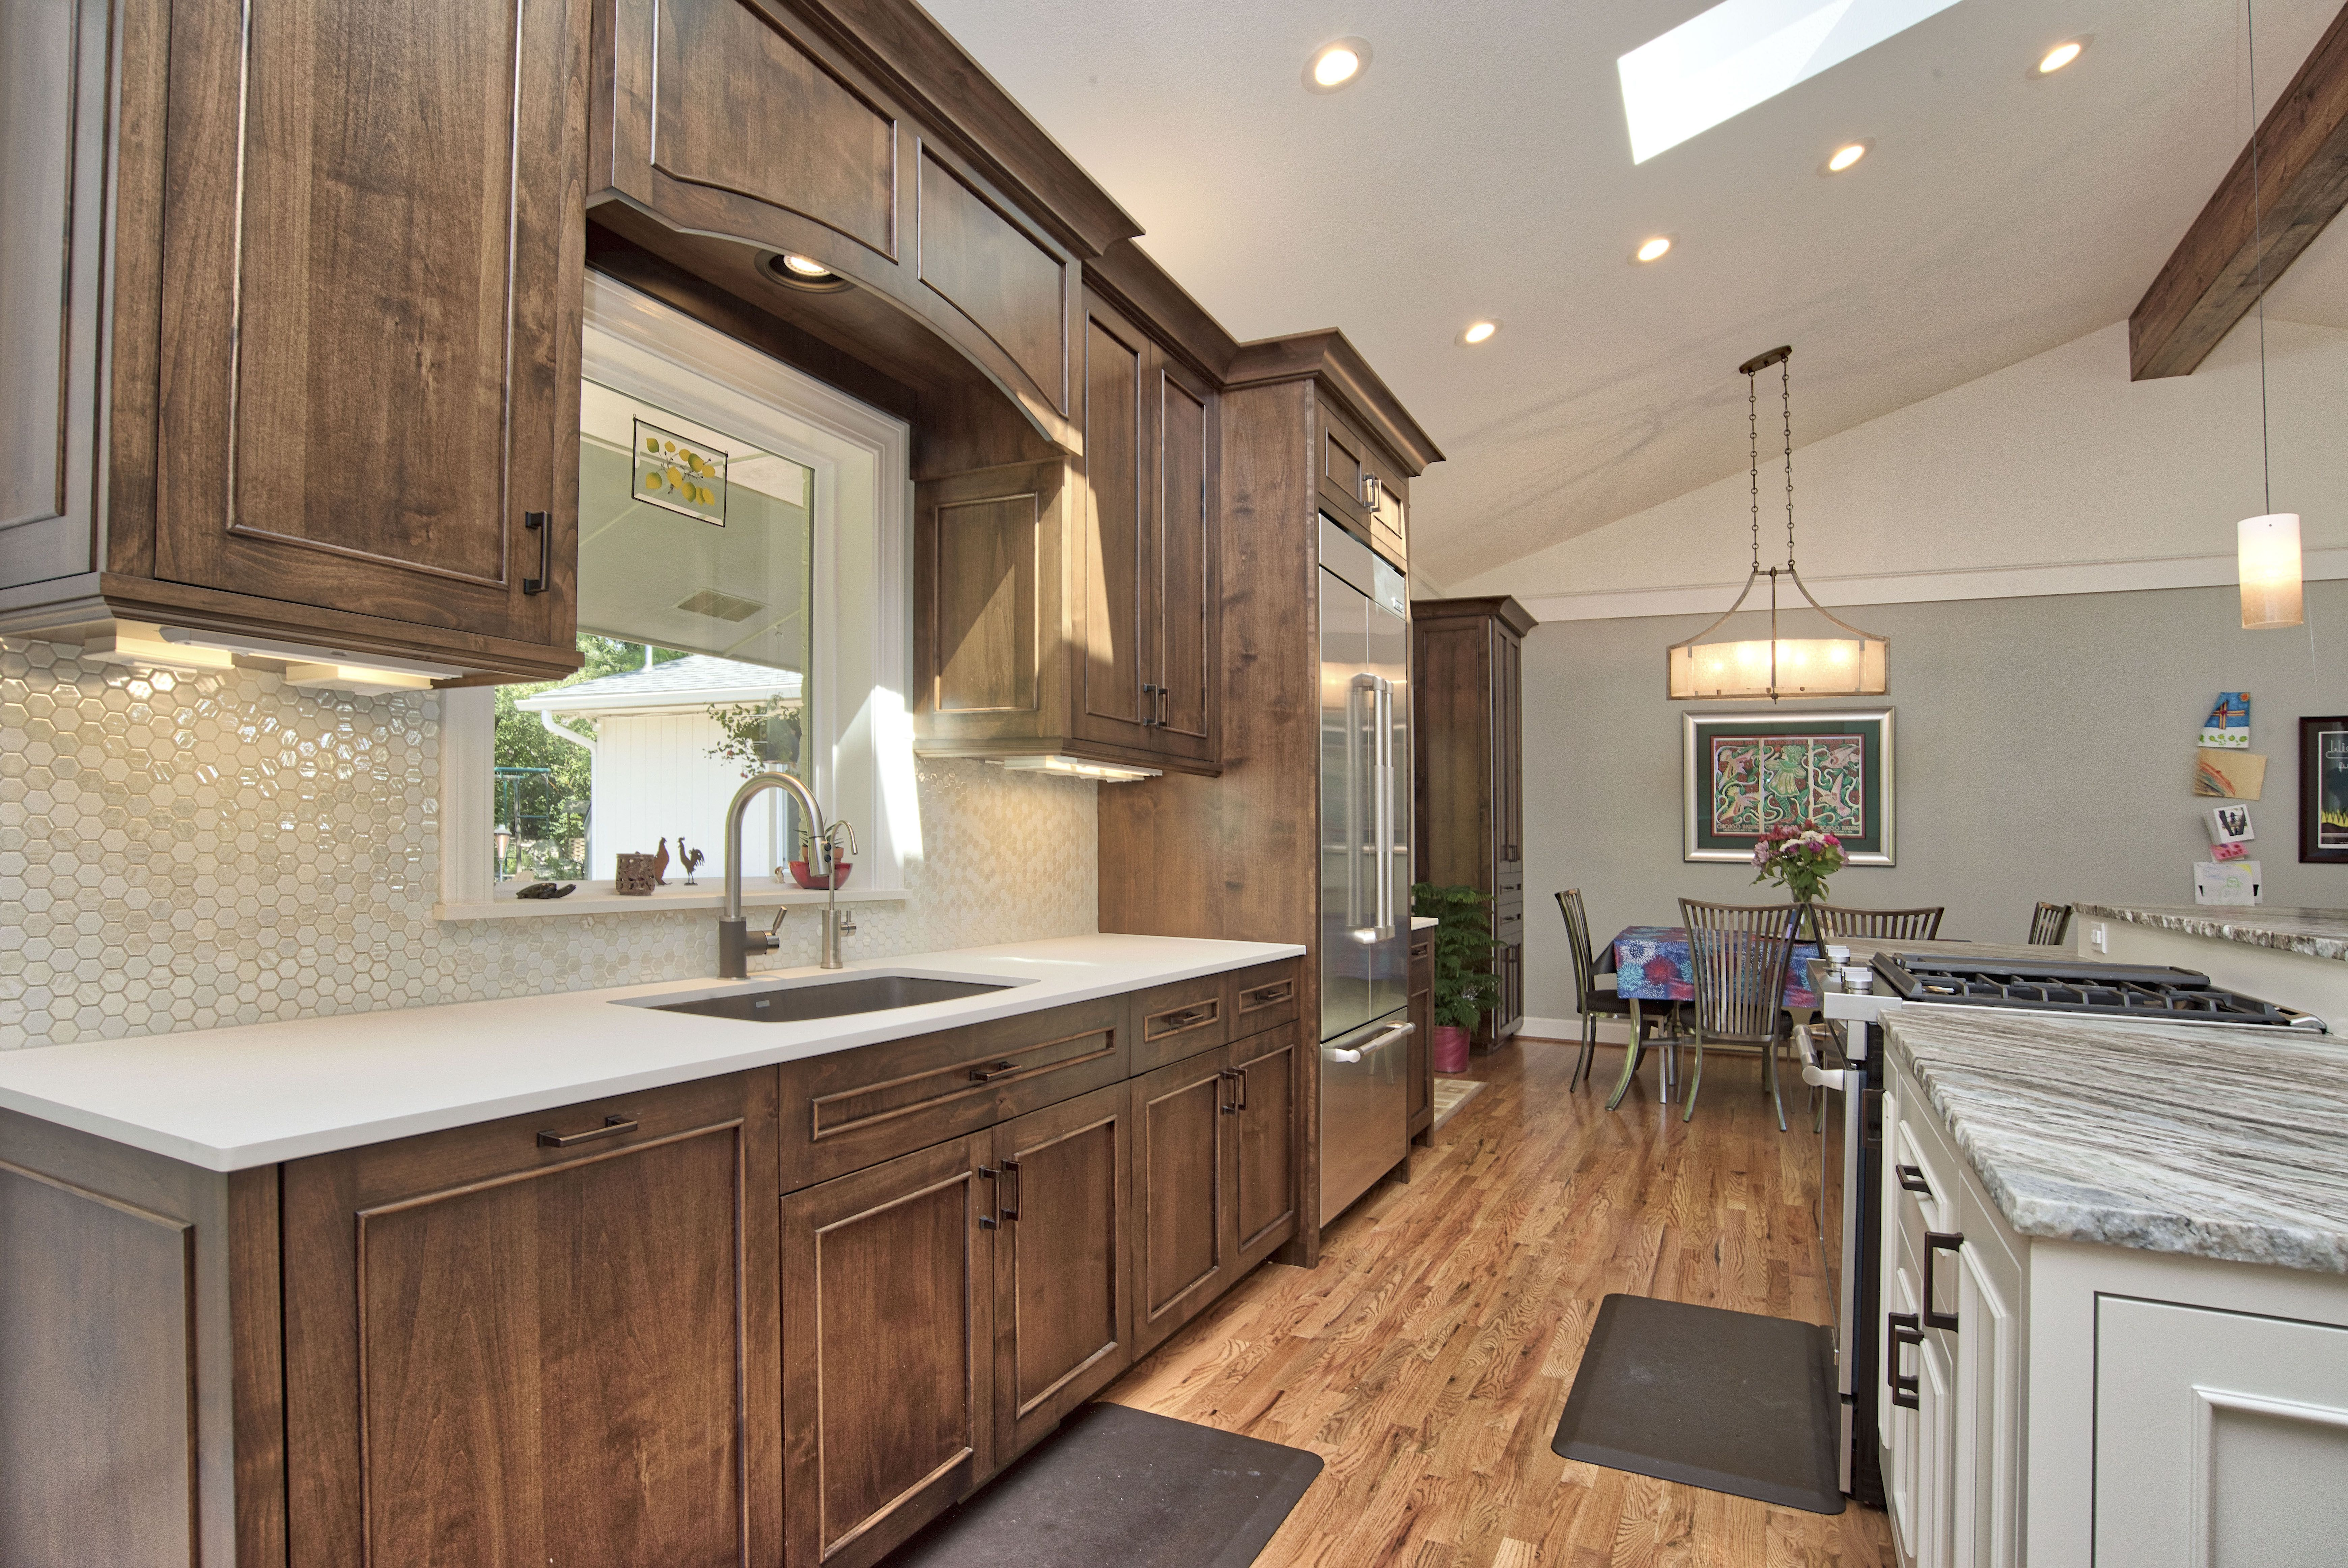 Luxury Custom Kitchen Woodwork Cabinets Island Bar Dream Home House